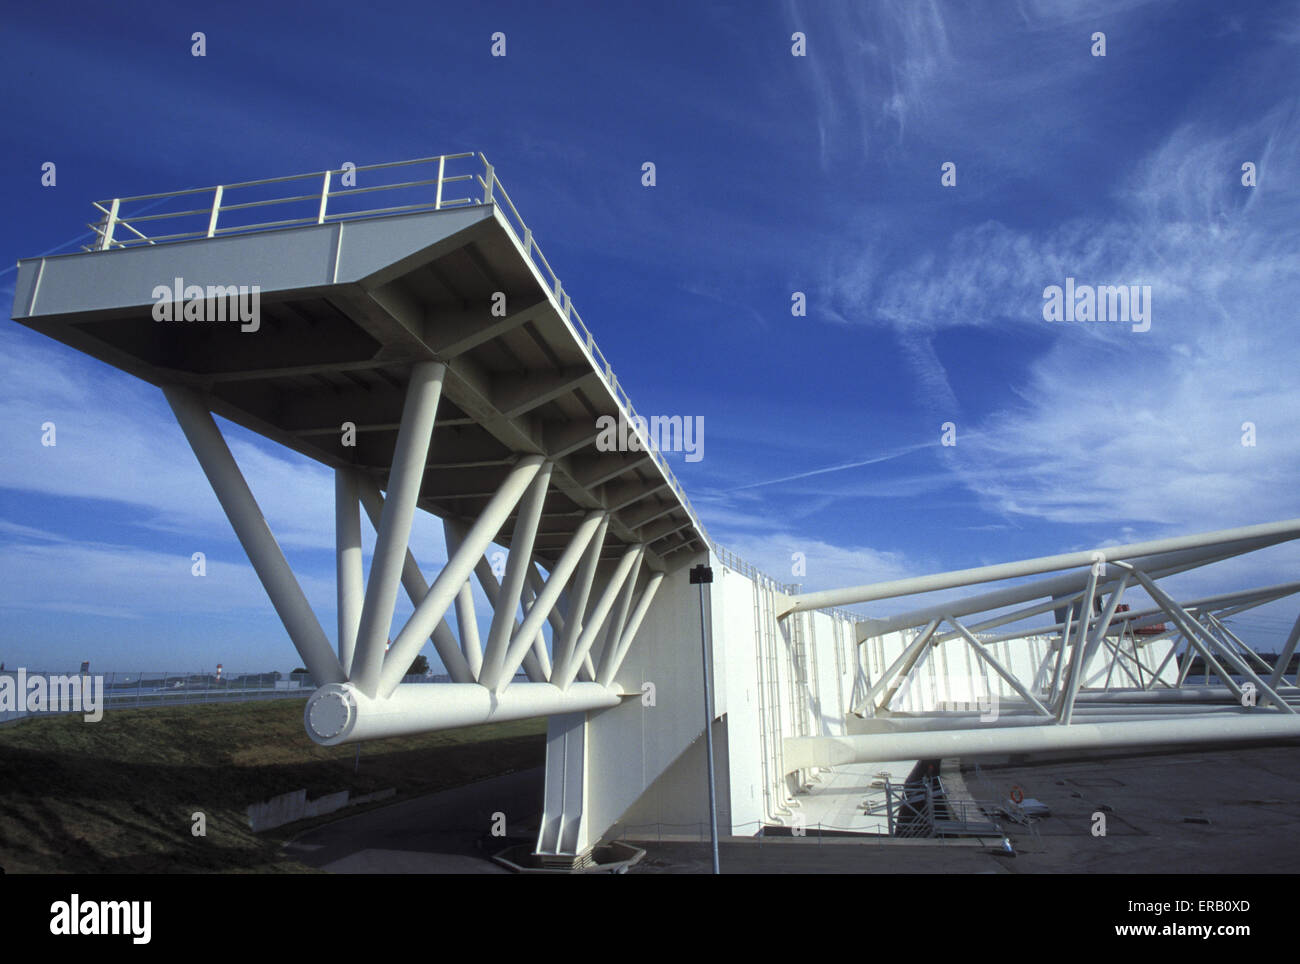 NLD, Netherlands, Deltaproject, swivelling flood protection plant at the Nieuwe Waterweg west of Rotterdam.  NLD, - Stock Image